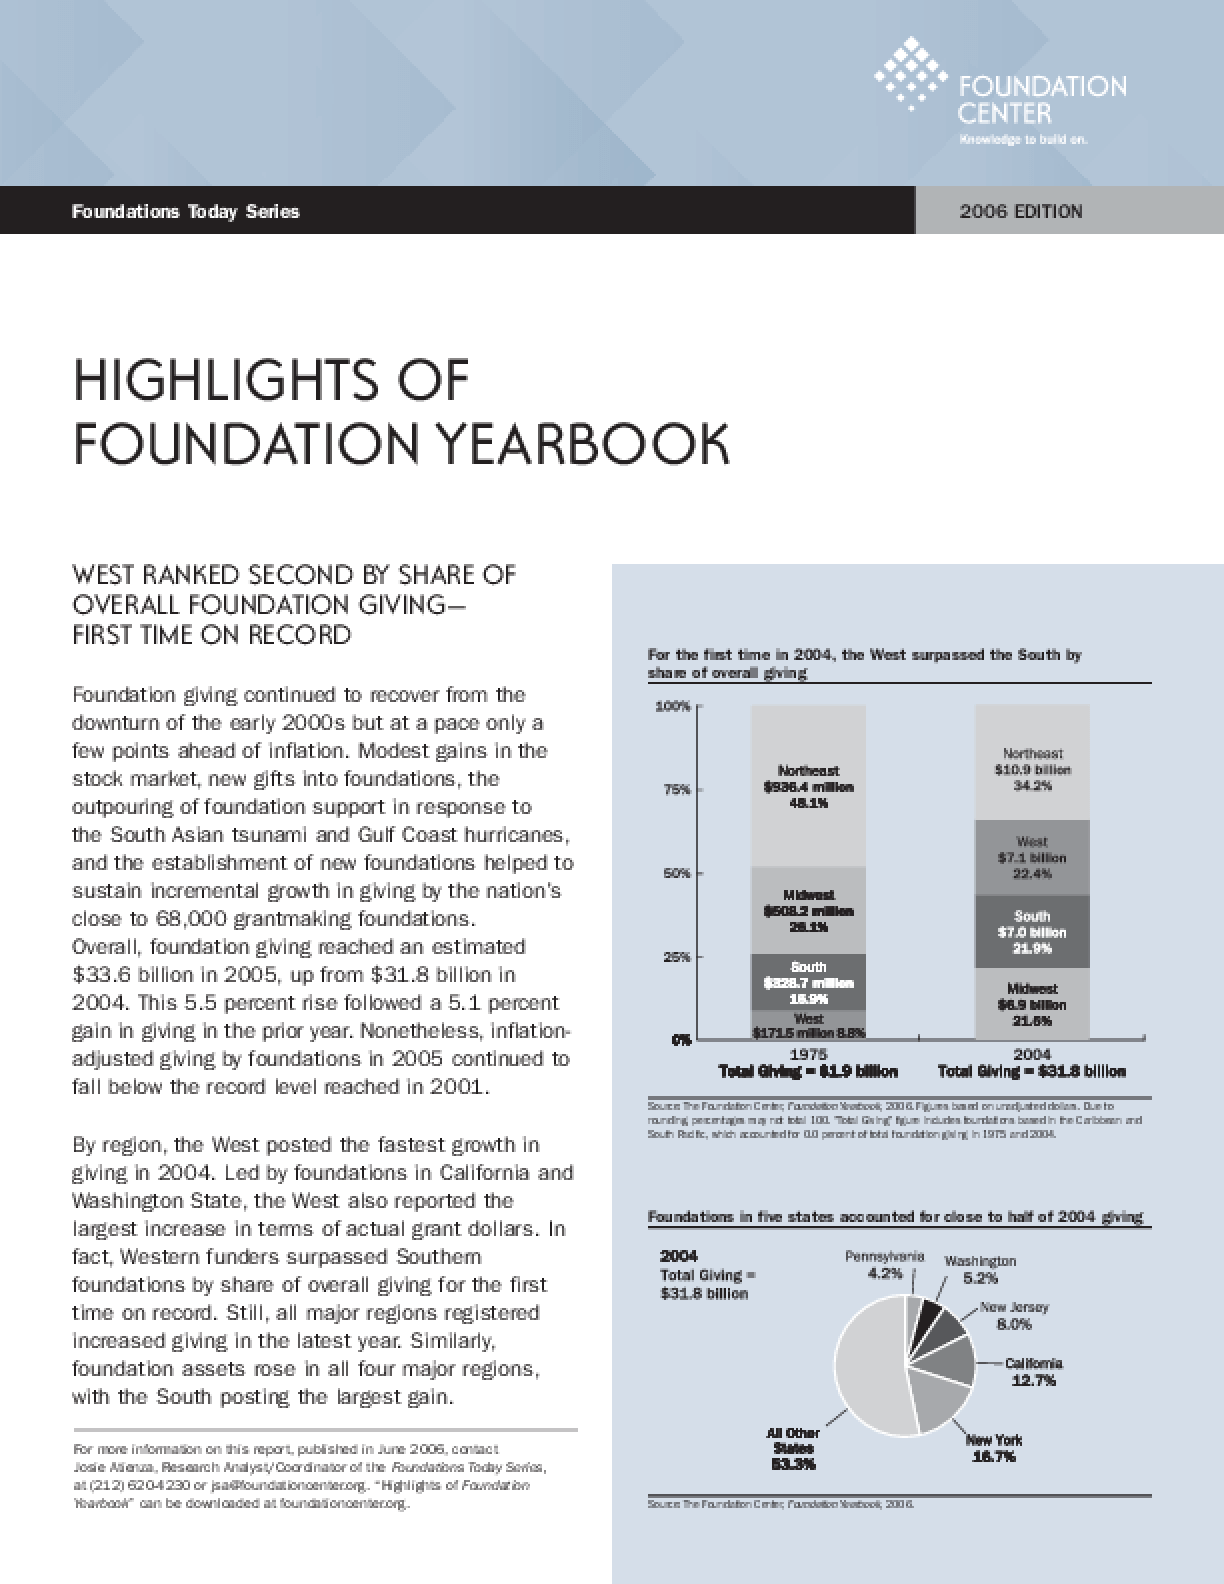 Foundations Today: Foundation Yearbook, 2006 edition (Highlights)